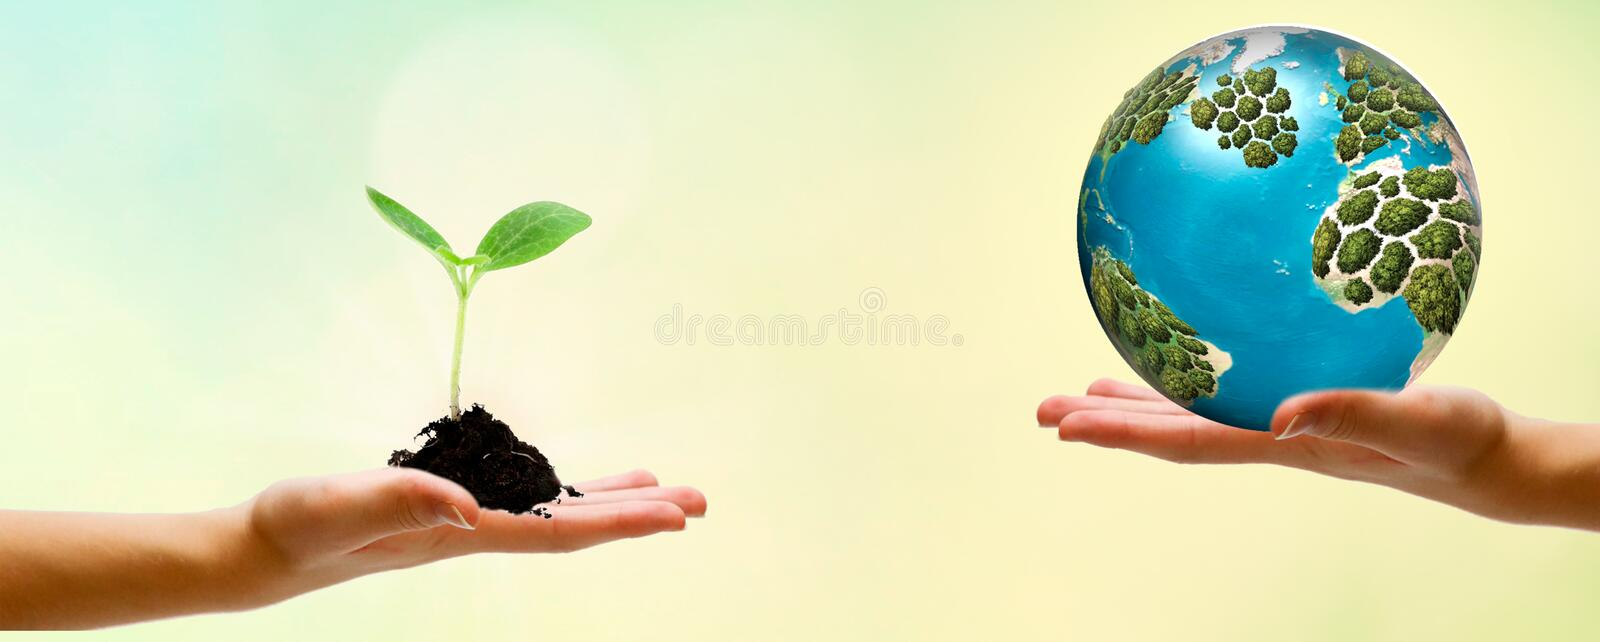 Closeup hands holding earth draw with chalk. World harmony green peace environment earth day together concept banner. Panoramic stock photos